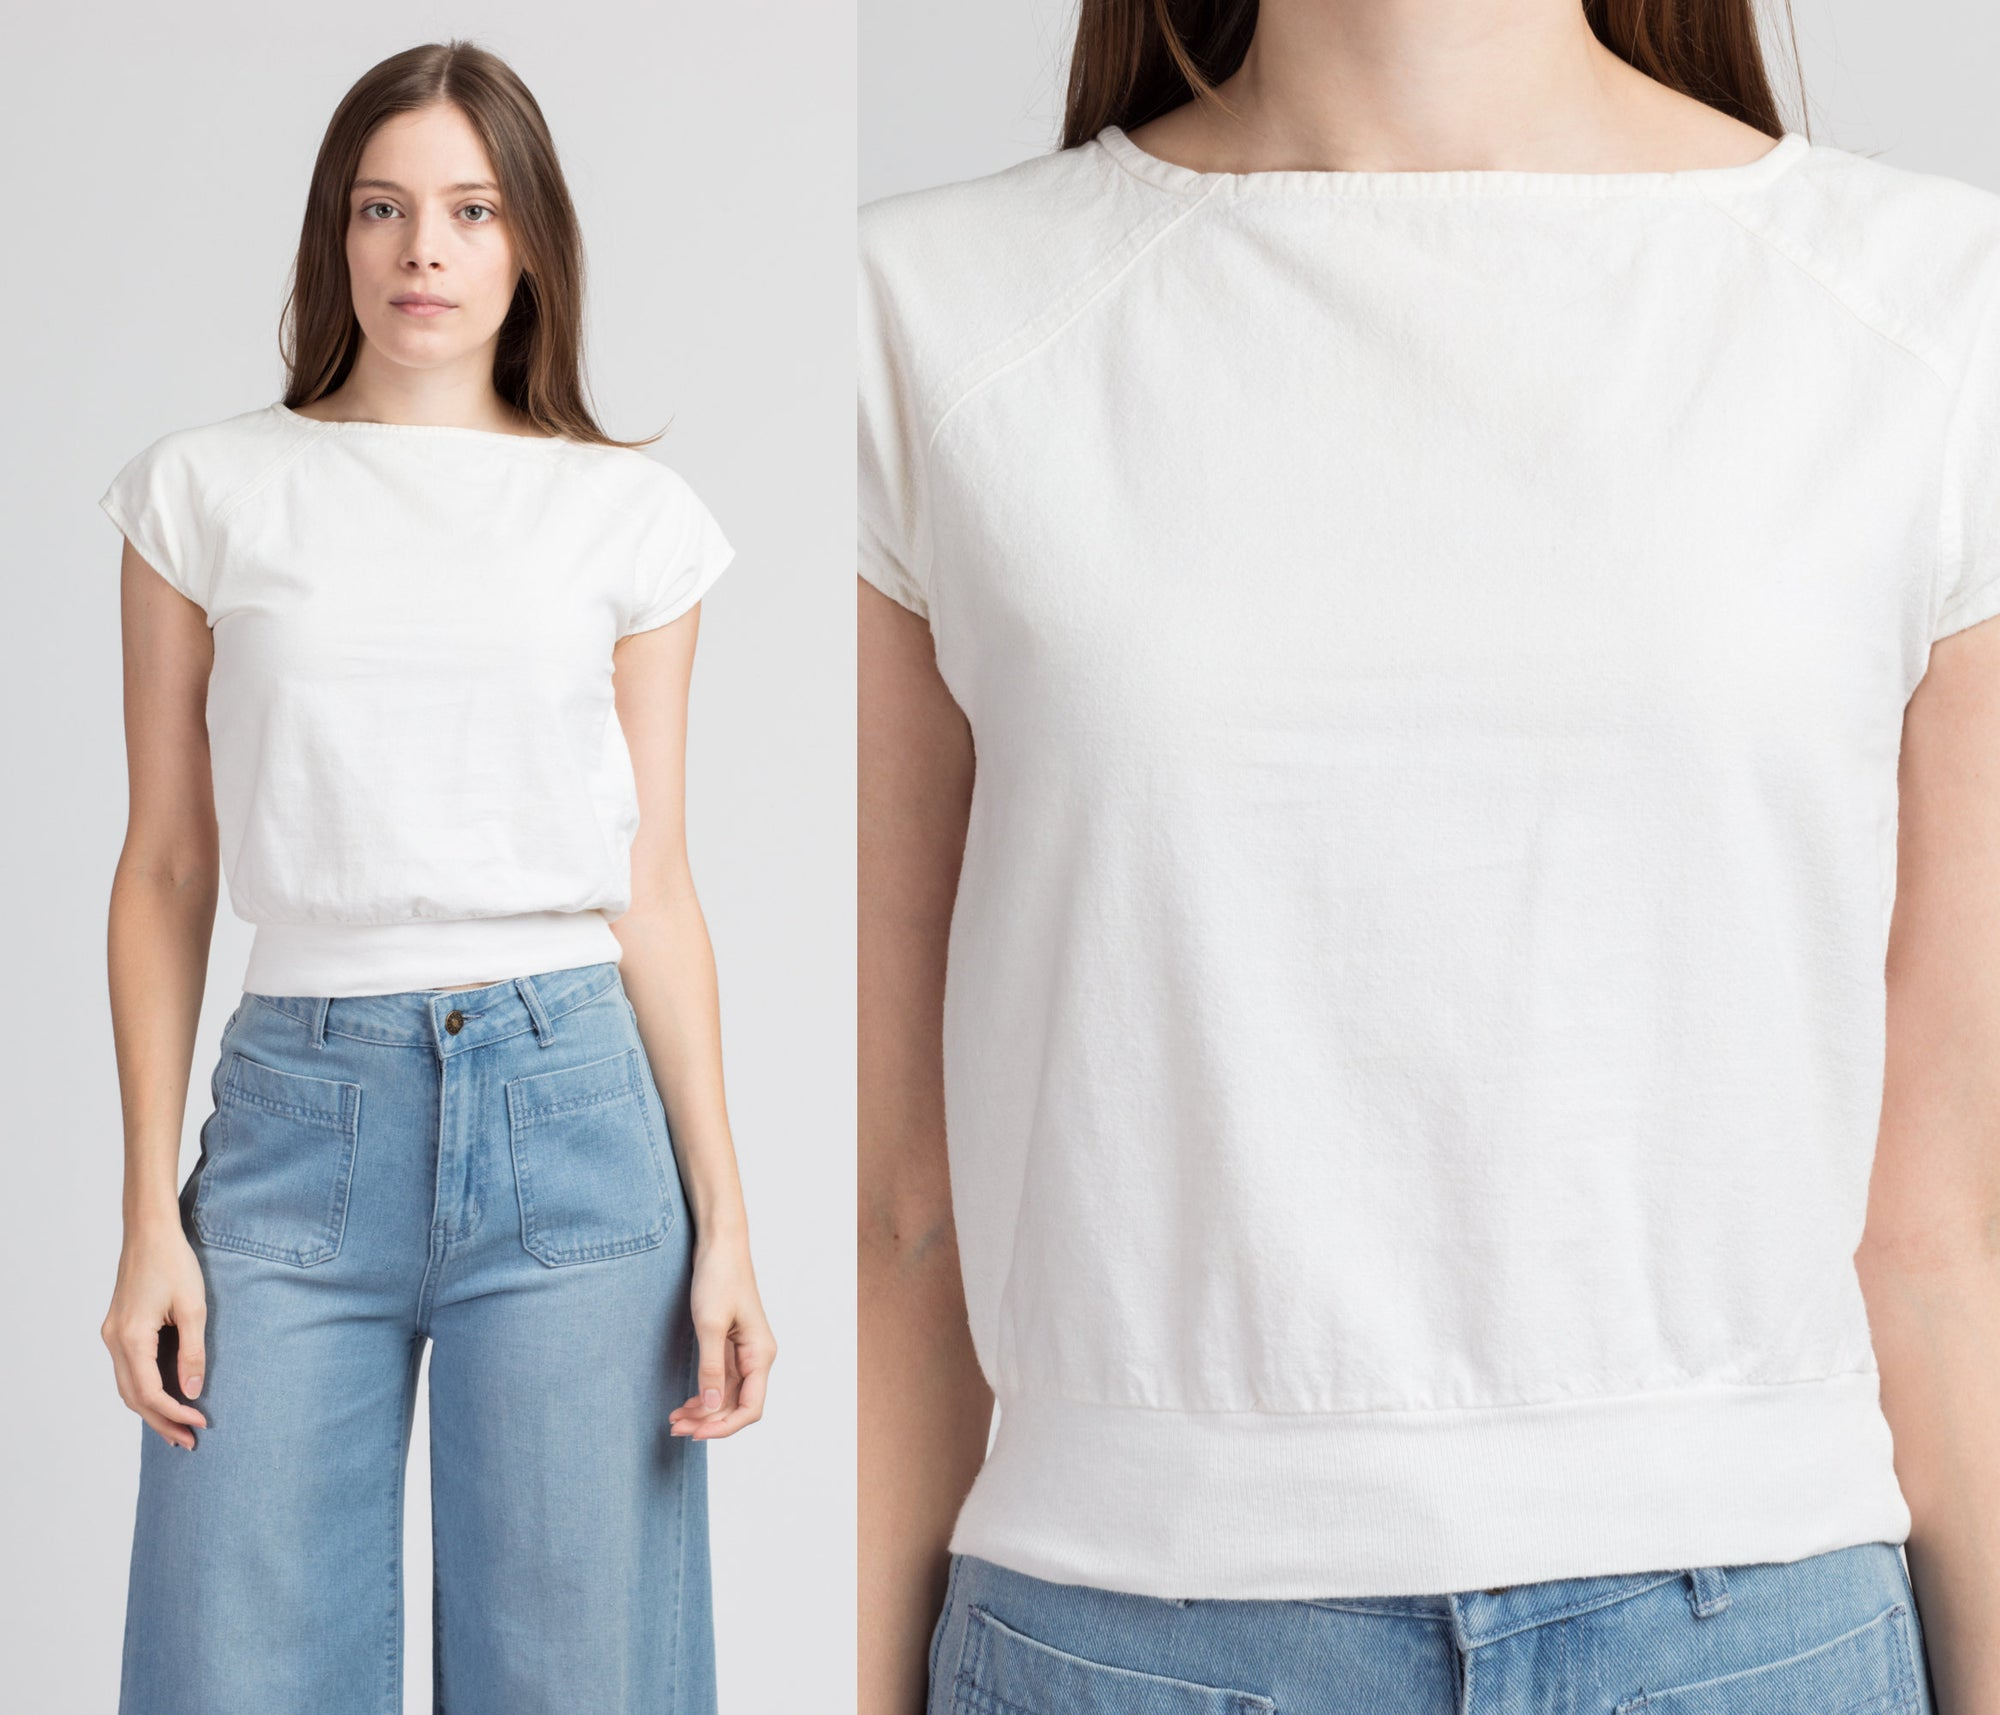 80s White Cotton Crop Top - Extra Small